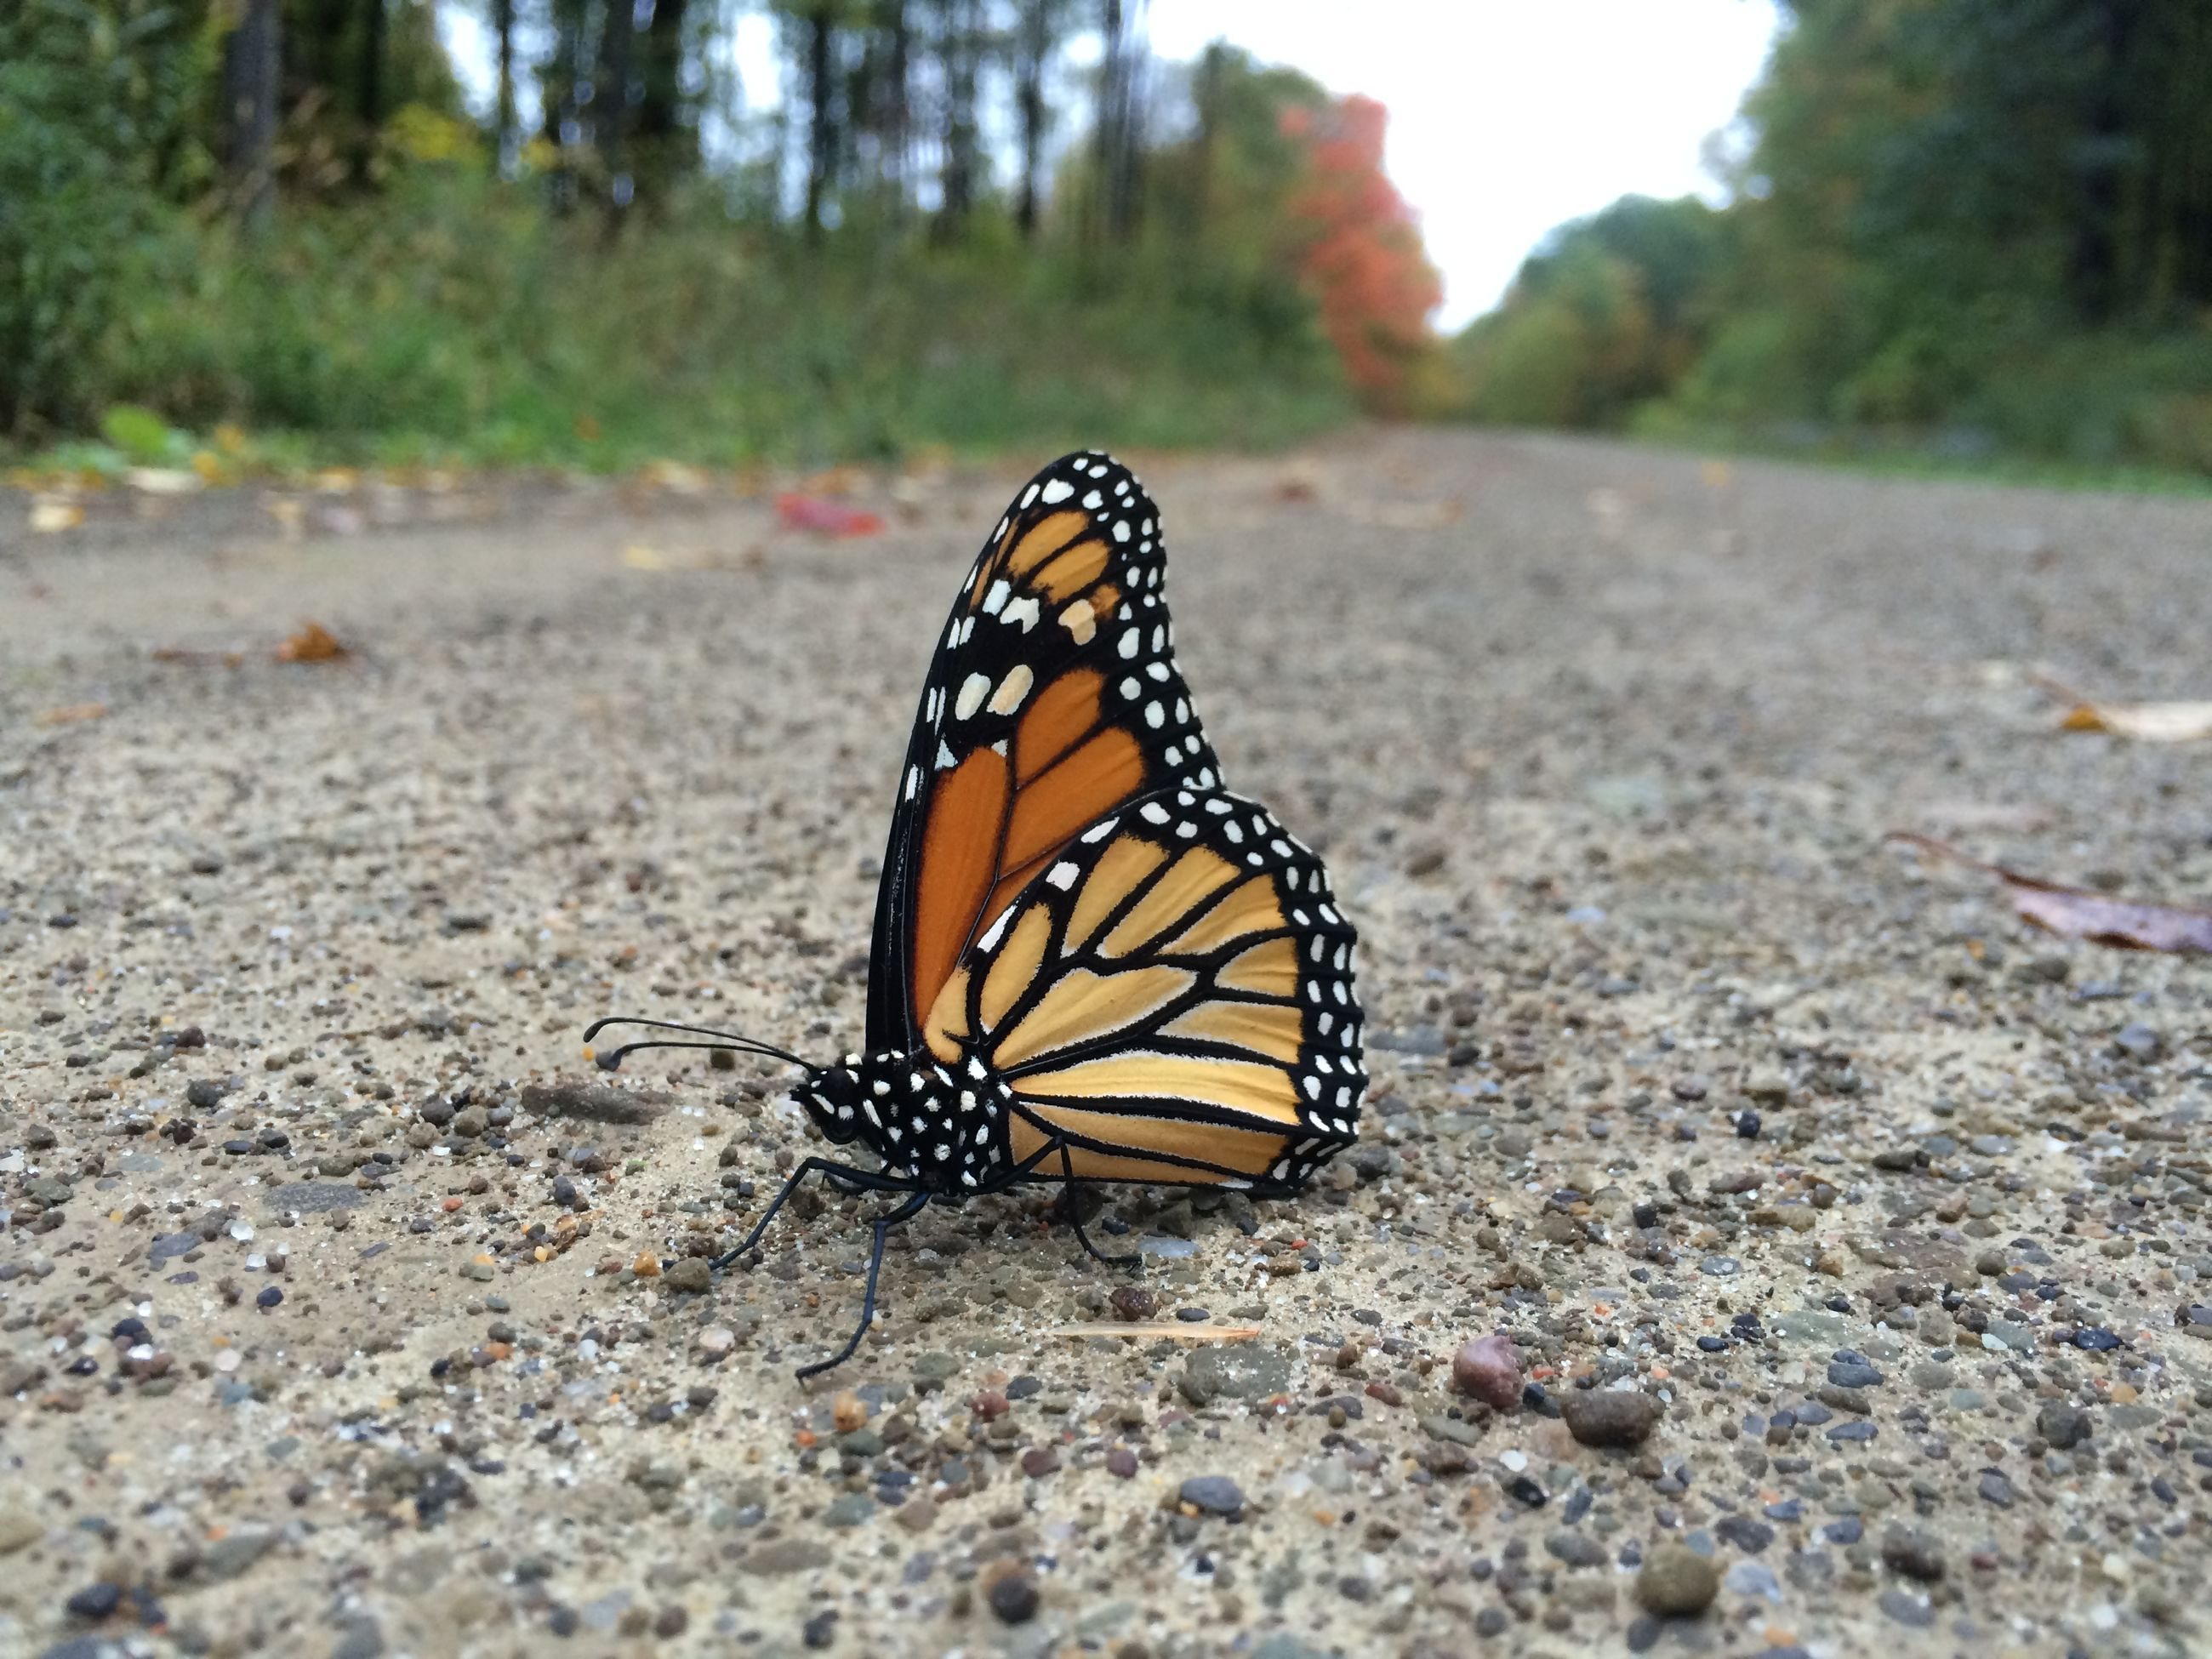 one animal, butterfly - insect, animal themes, animal markings, insect, animals in the wild, wildlife, butterfly, natural pattern, close-up, focus on foreground, nature, beauty in nature, outdoors, animal wing, no people, day, selective focus, animal antenna, fragility